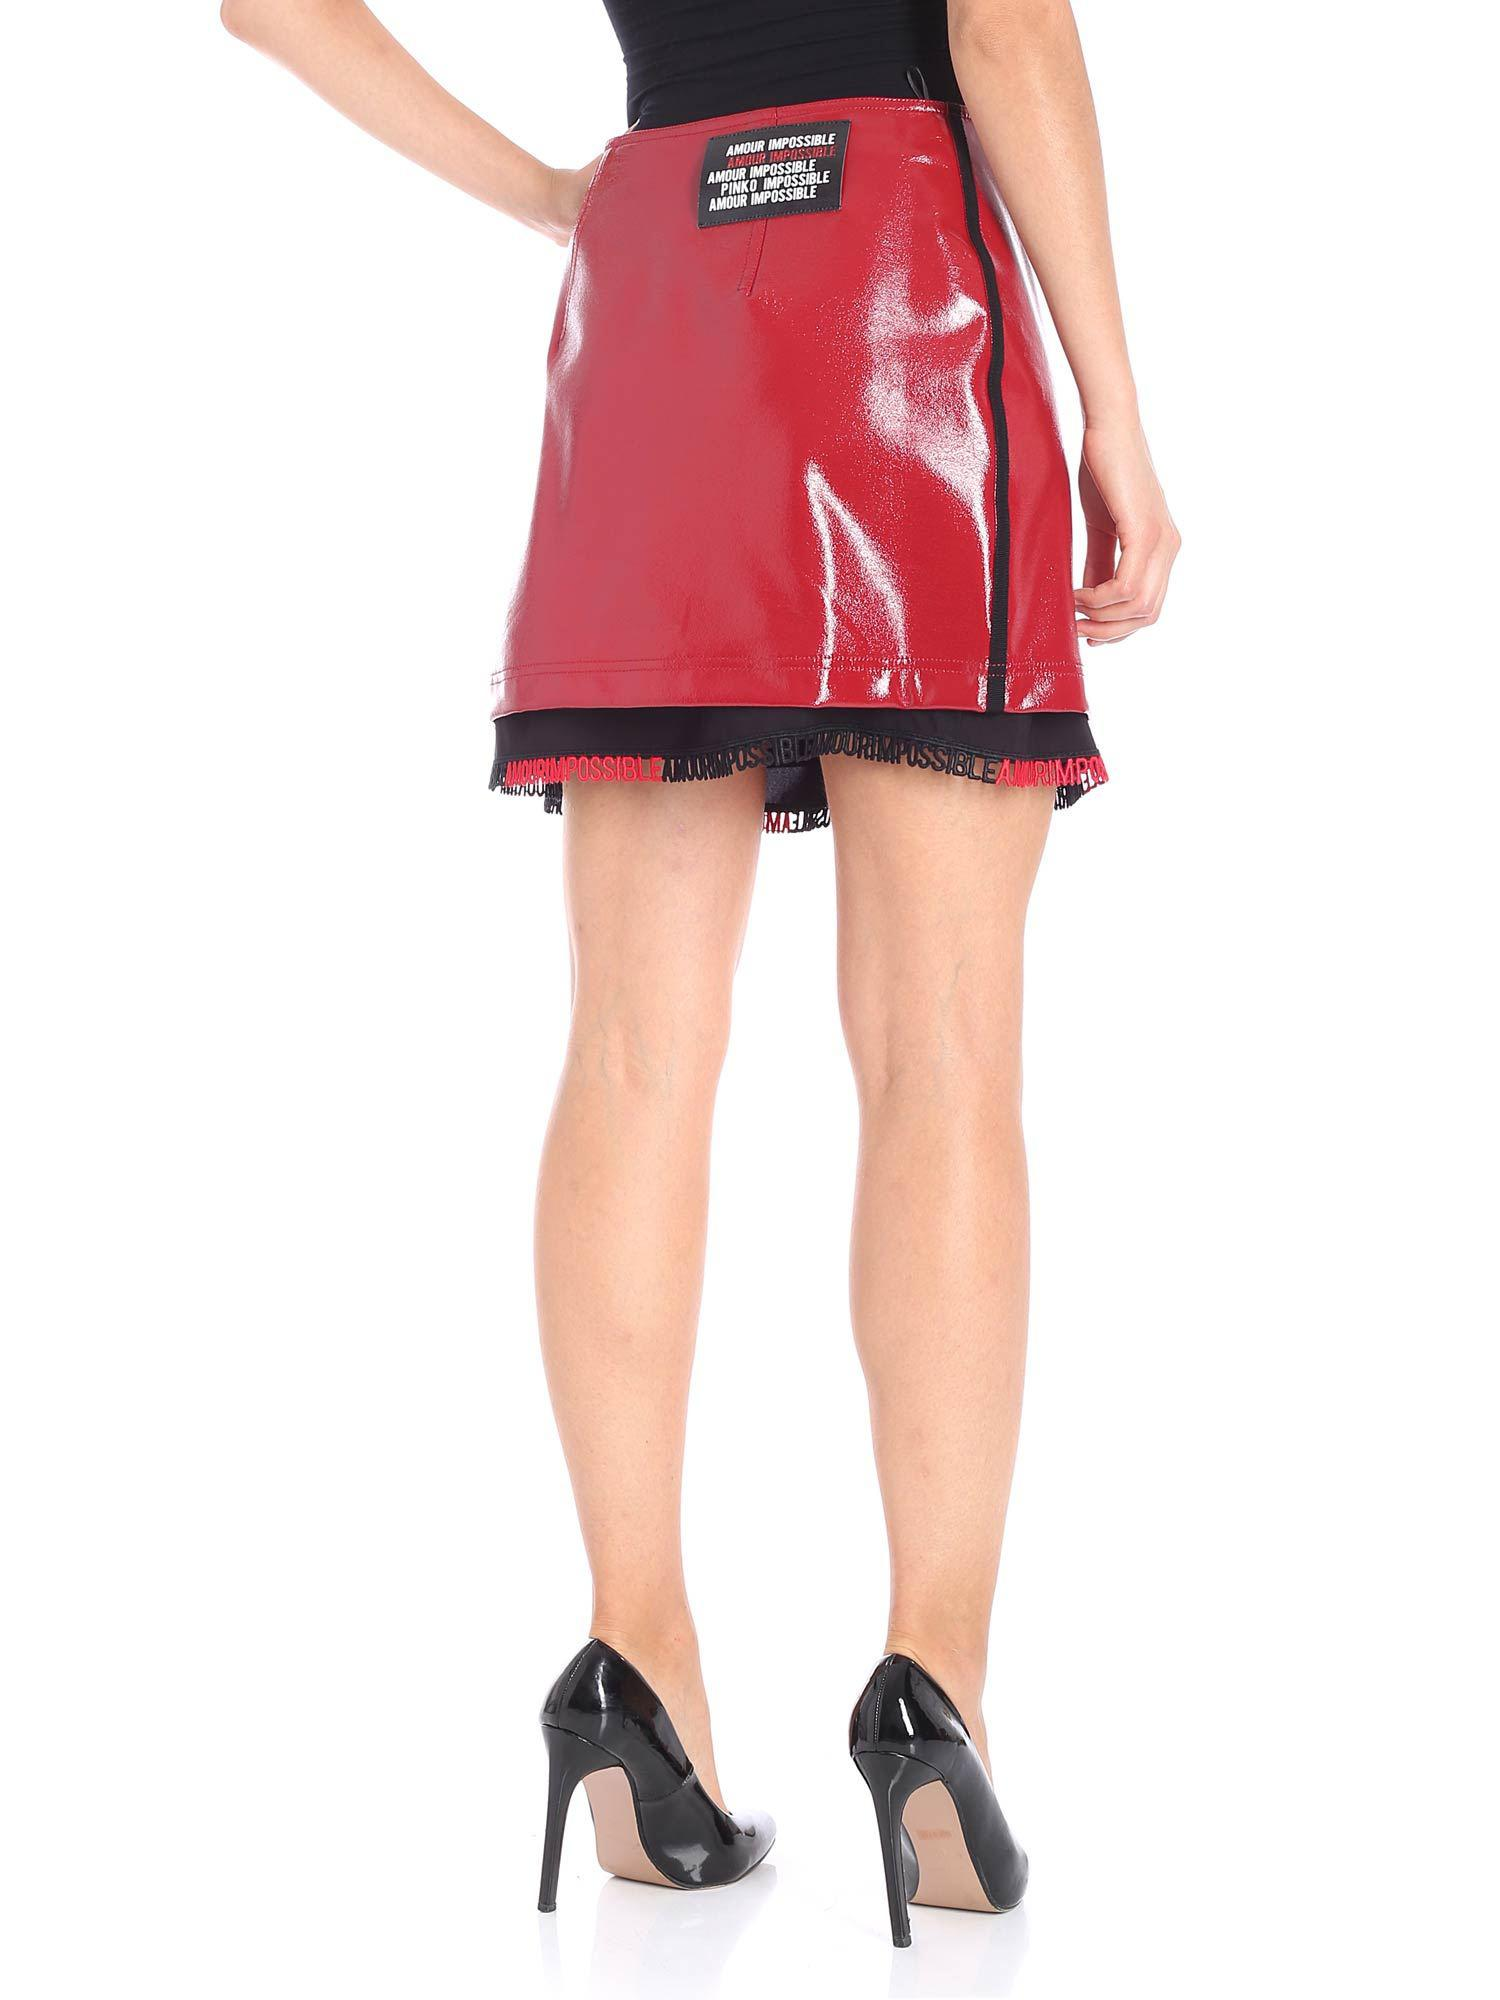 0db7a805a0f33a pinko-red-Blasamo-Red-Patent-Leather-Mini-Skirt.jpeg